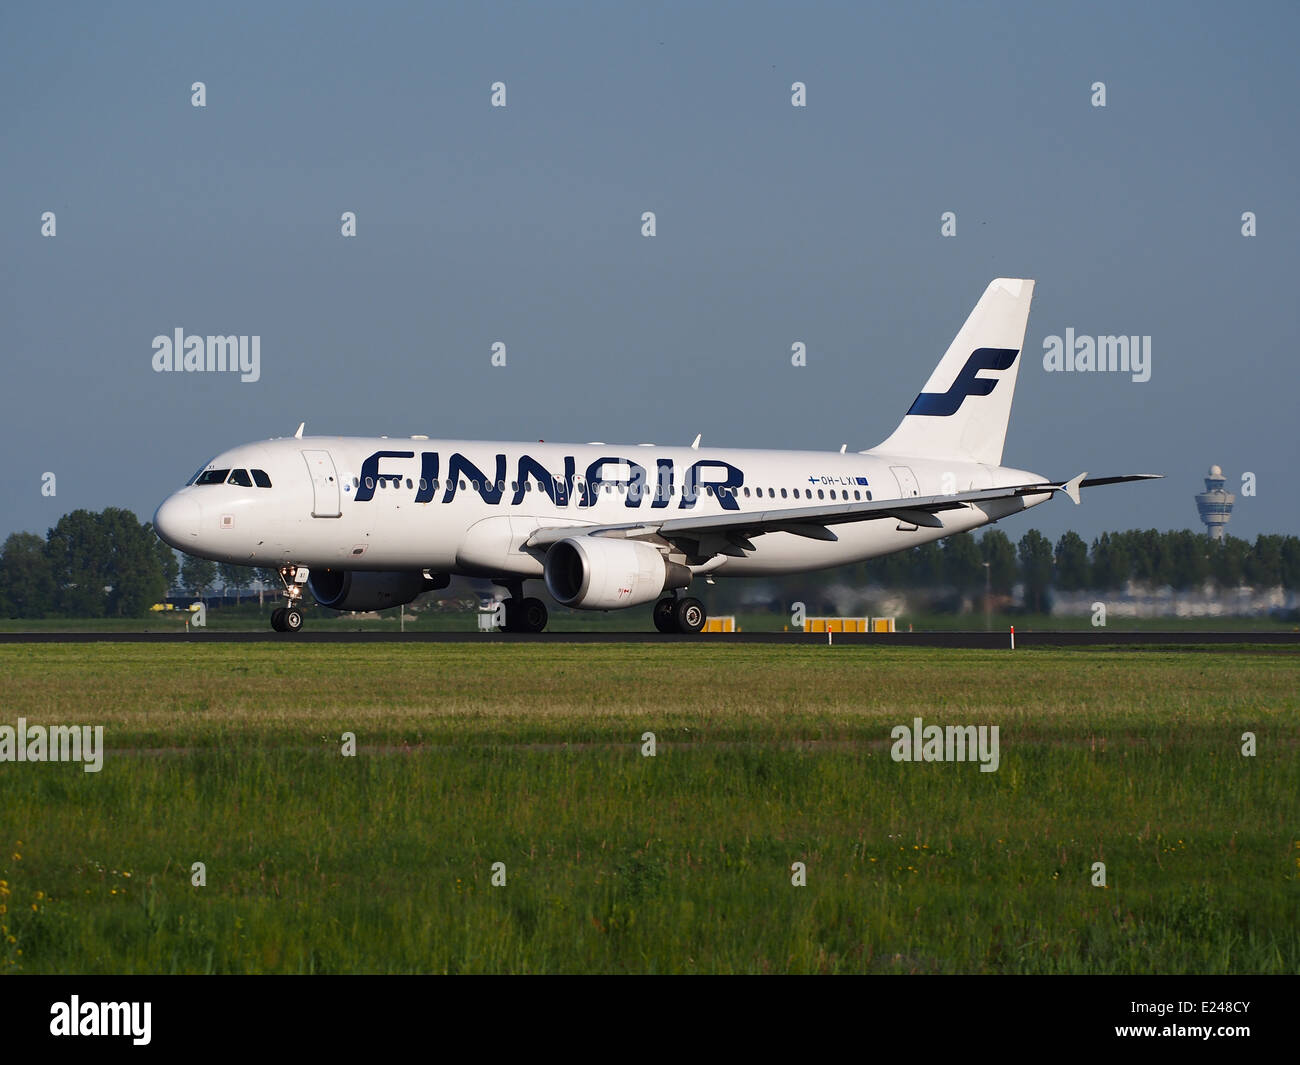 OH-LXI Finnair Airbus A320 takeoff from Schiphol (AMS - EHAM), The Netherlands, 17may2014, pic-1 - Stock Image